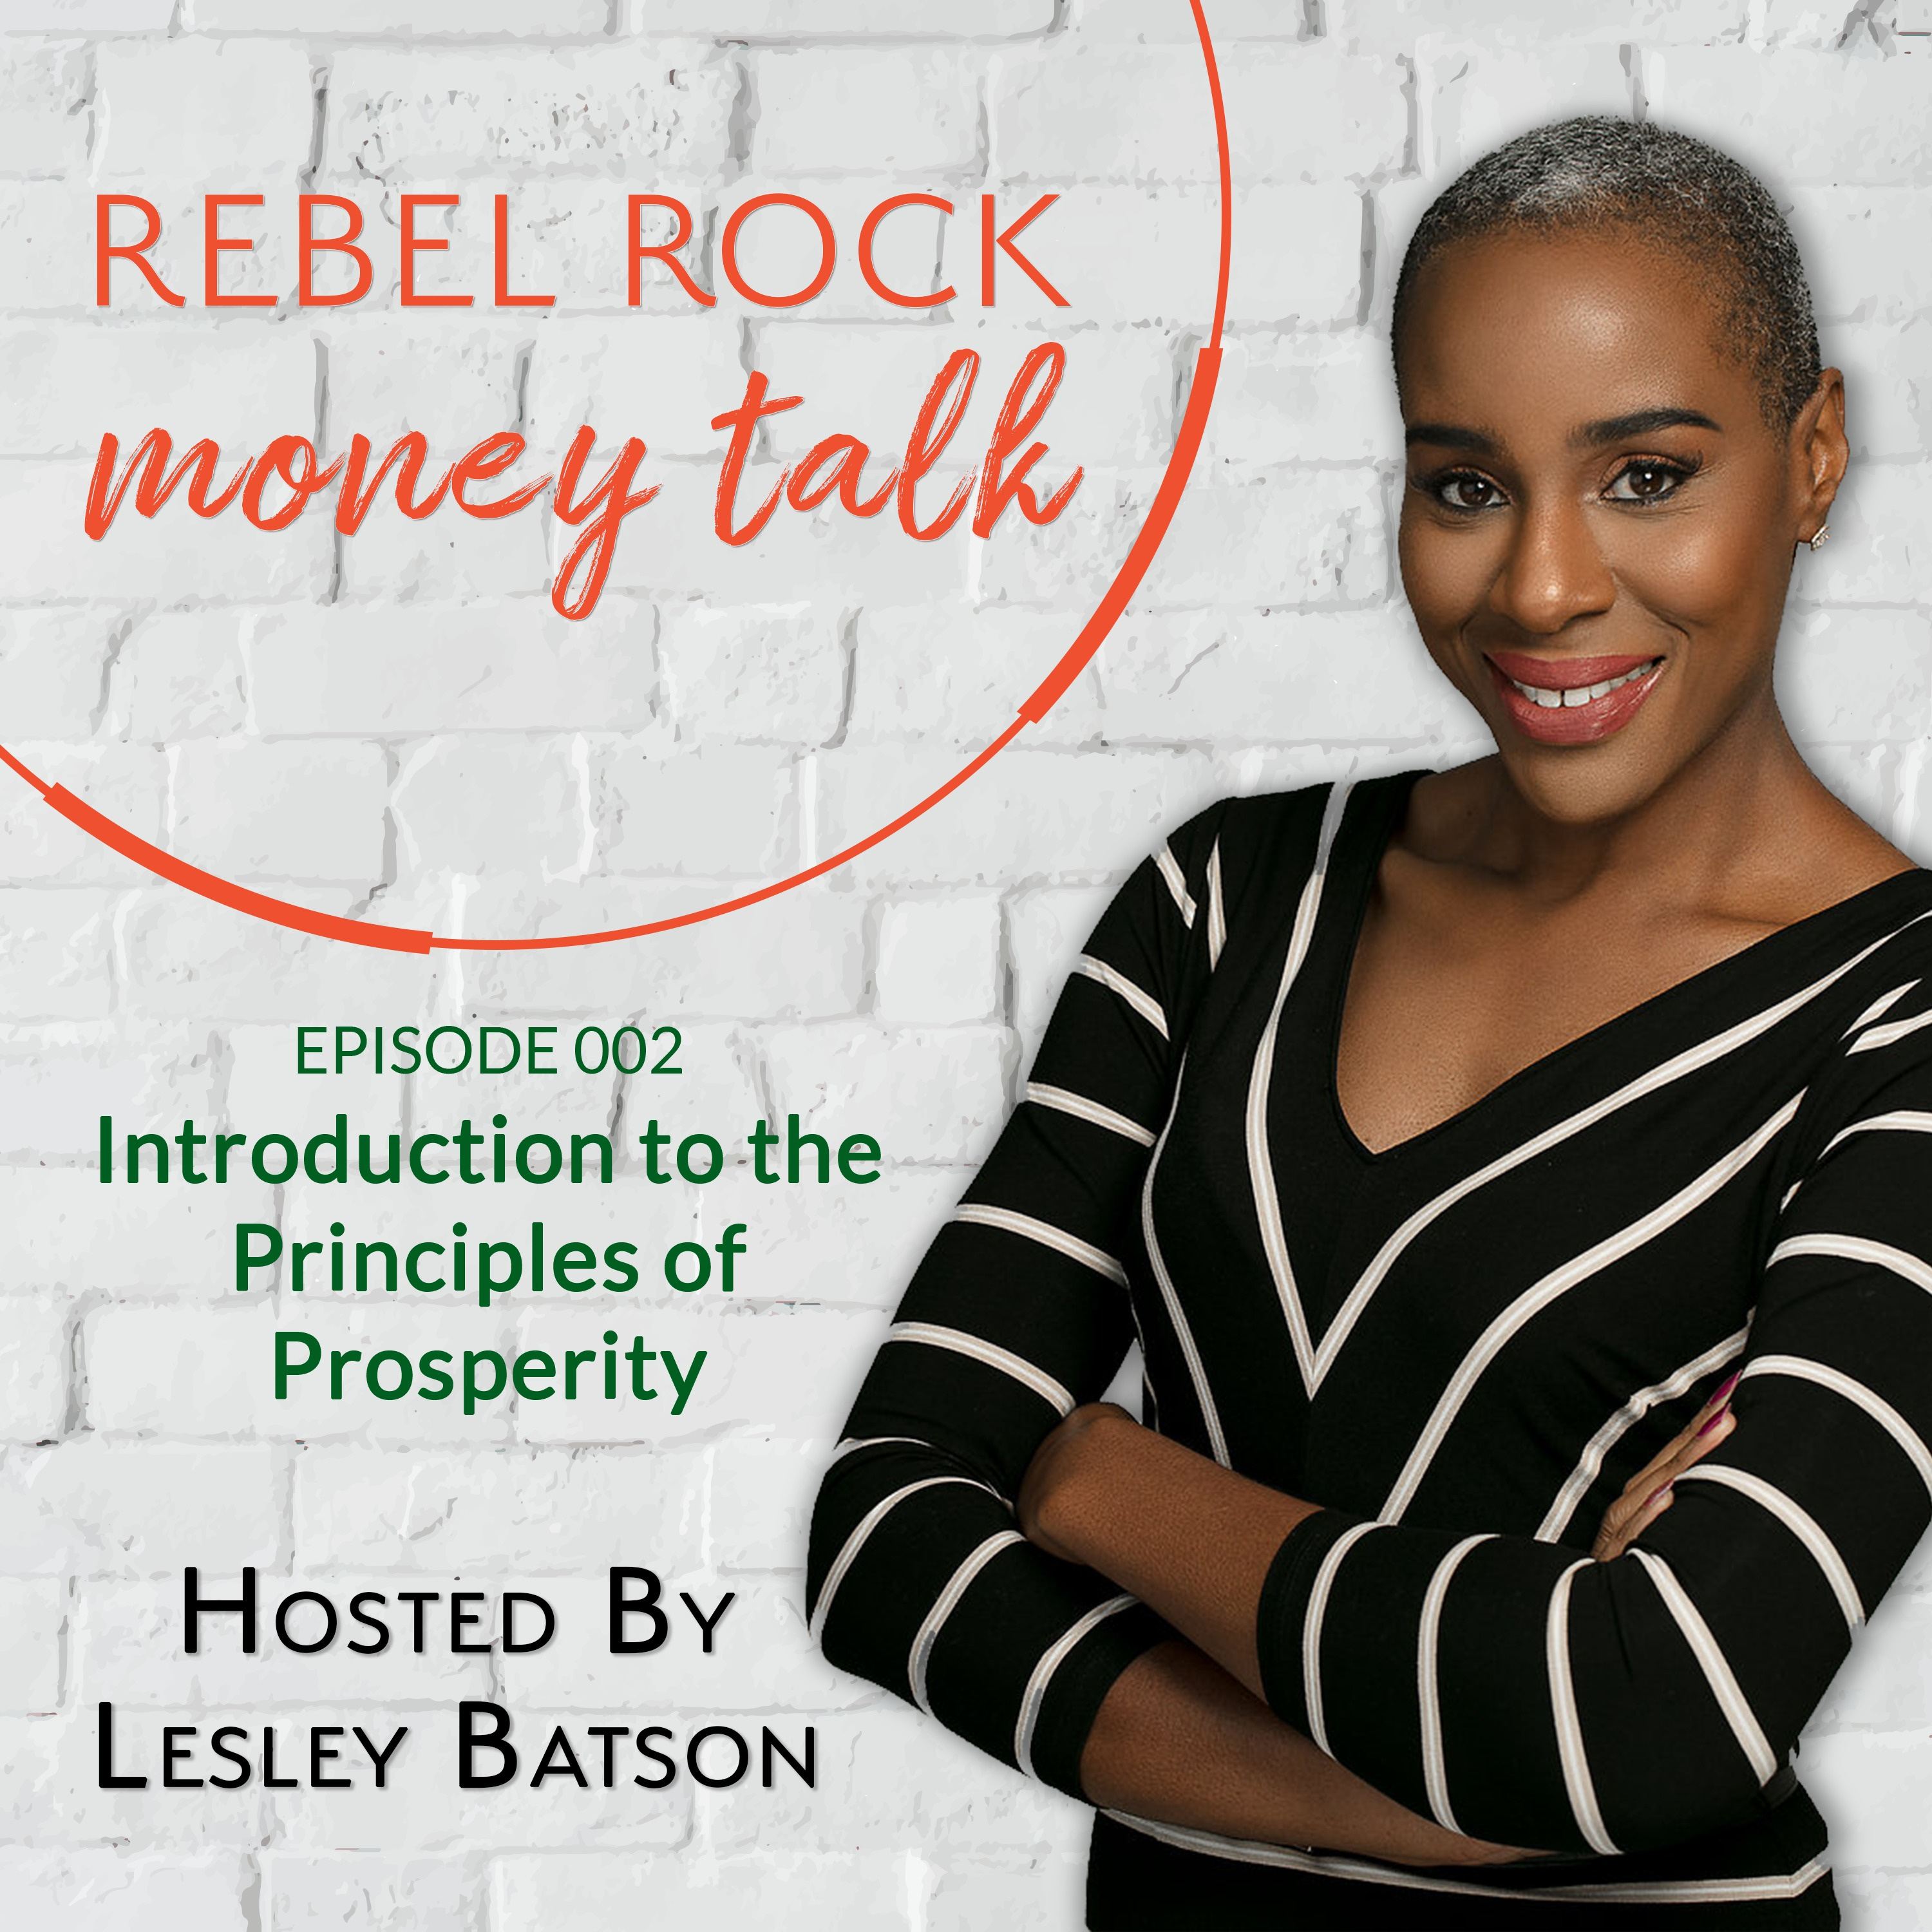 #002 - Introduction to the Principles of Prosperity